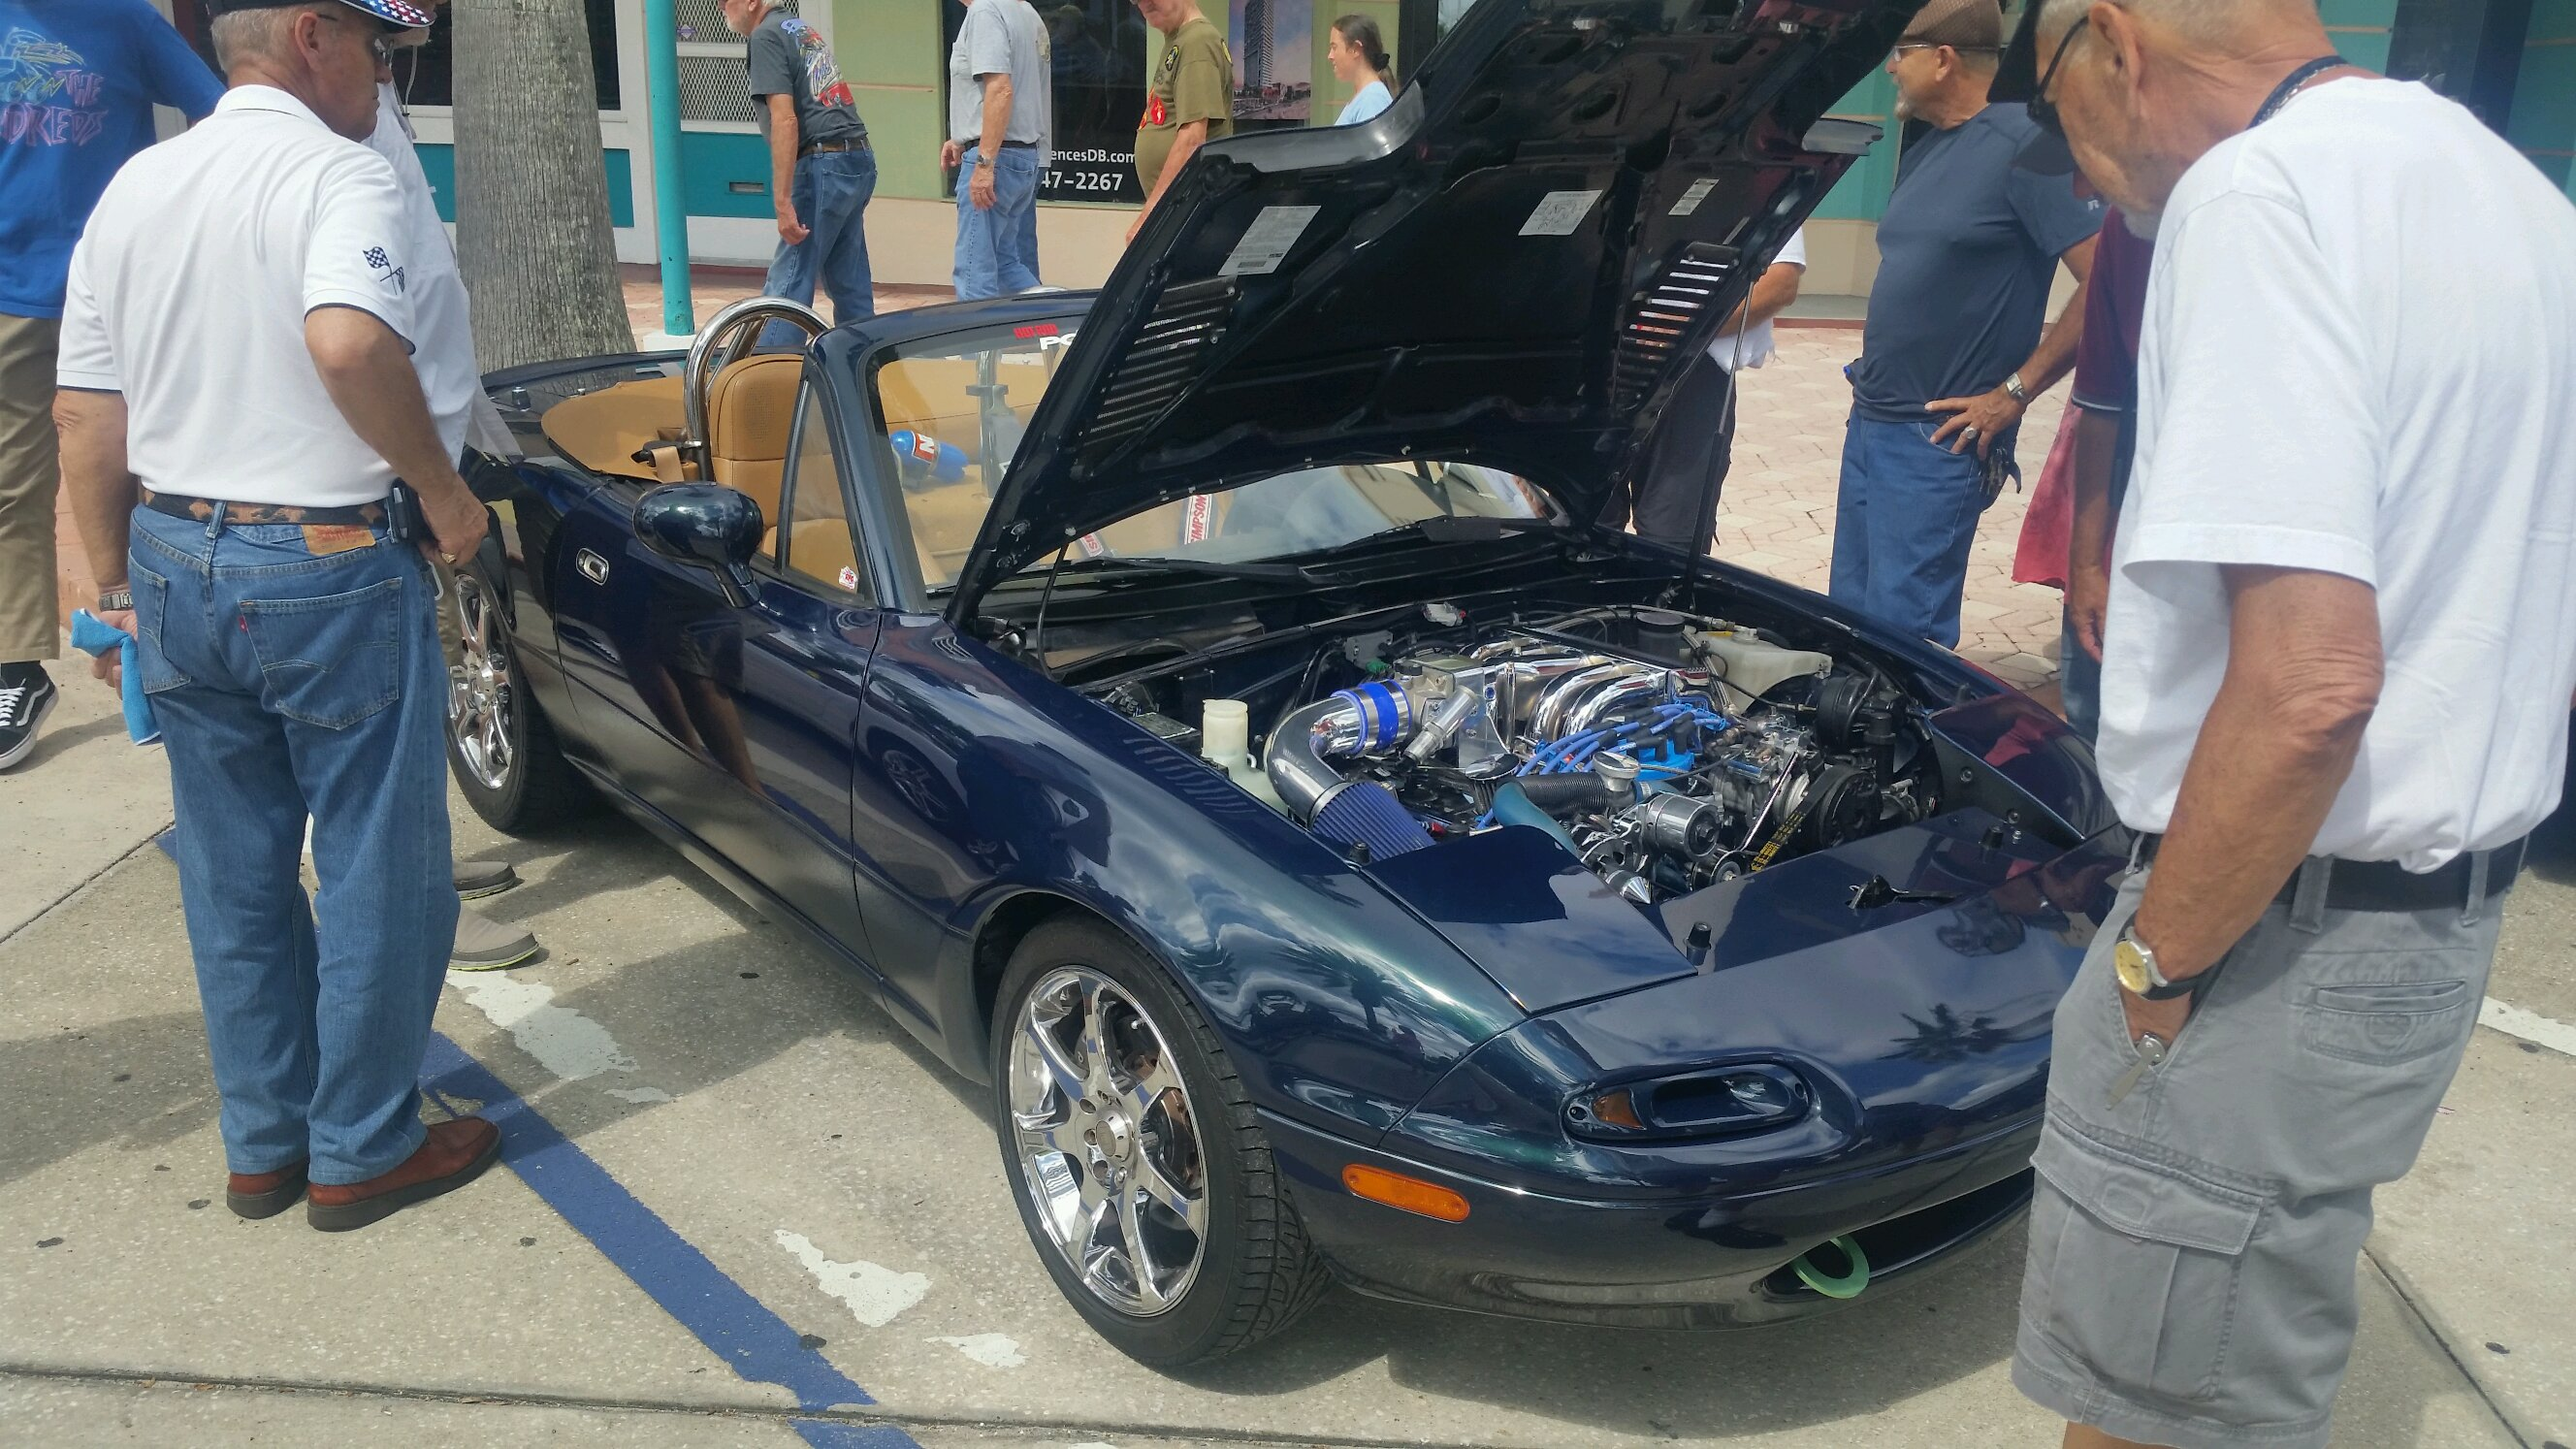 Miata with a coyote v8 swap, this thing was sick, couldn't